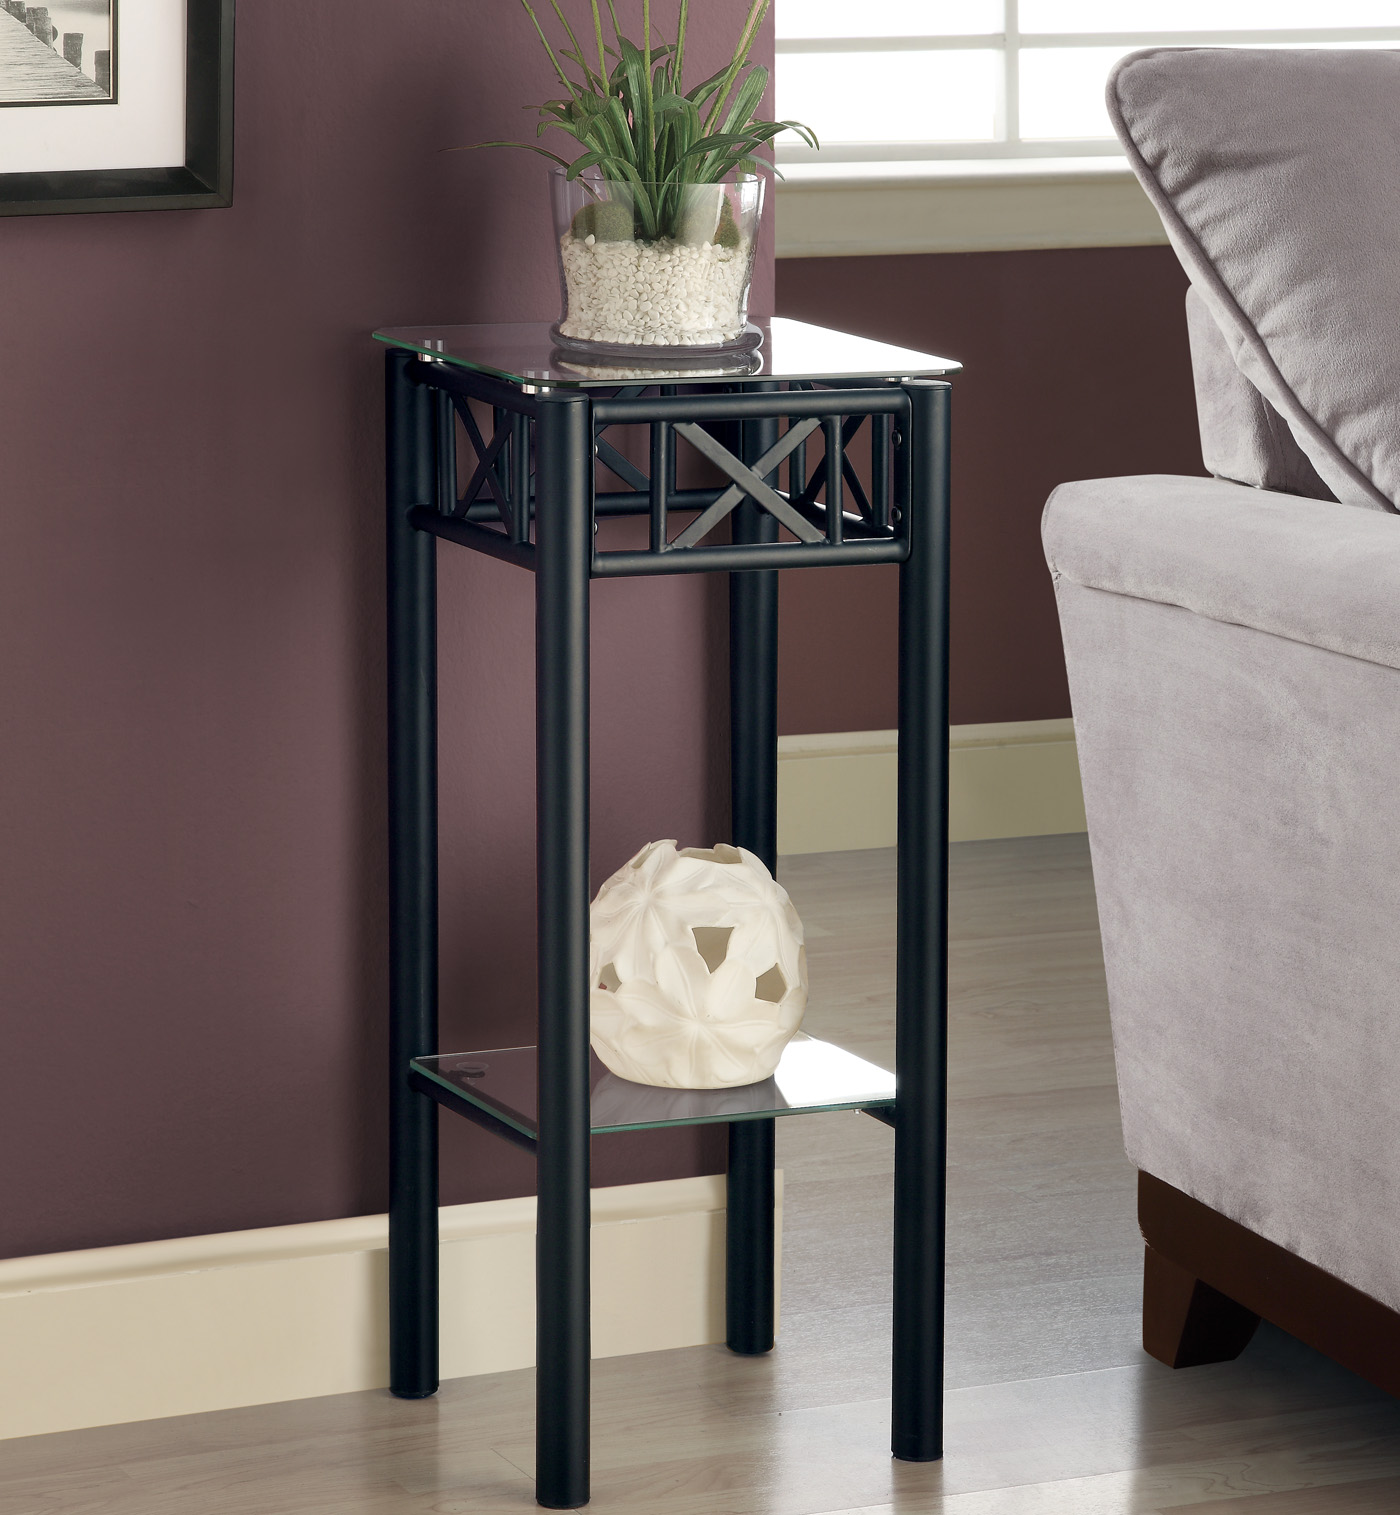 Black Wire Plant Stand Black Metal Plant Stand With A Tempered Glass Top By